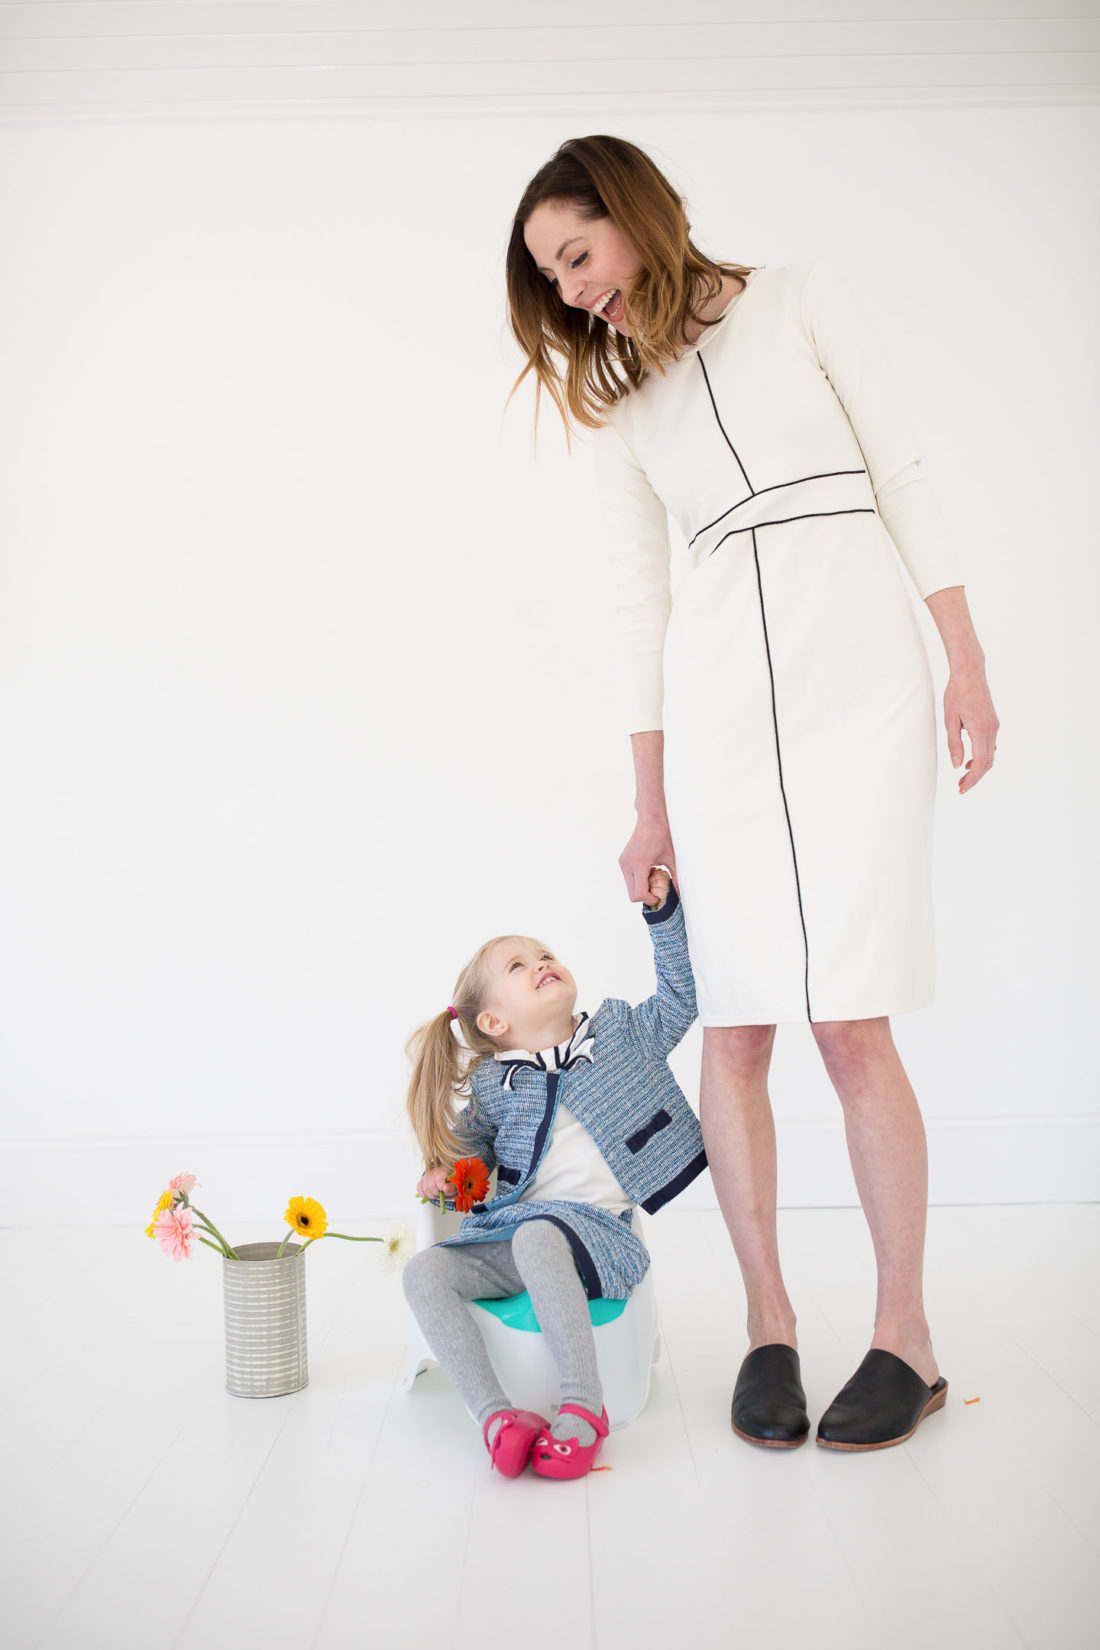 Eva Amurri Martino holds daughter Marlowe's hand while she uses the potty